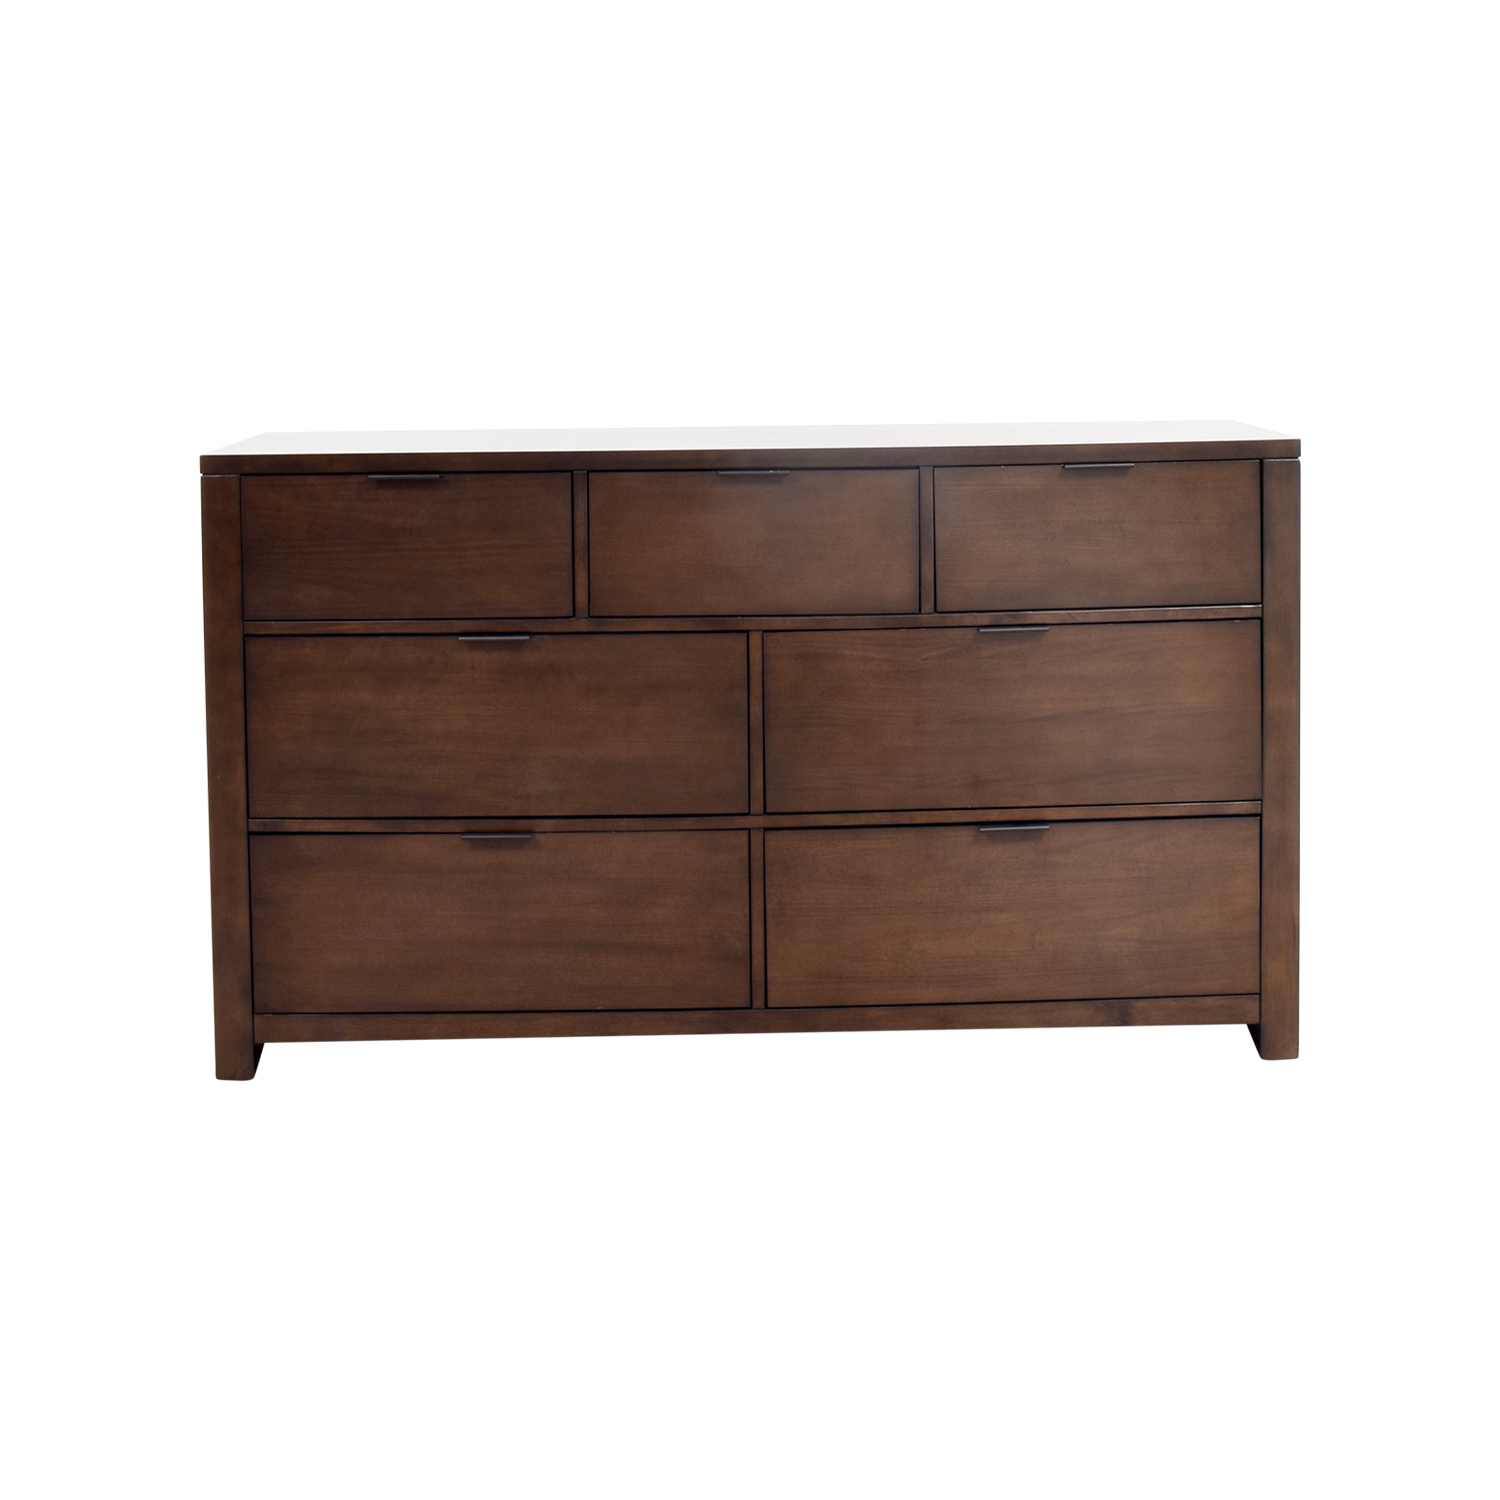 Macys Macys Tribeca Seven-Drawer Dresser dark brown